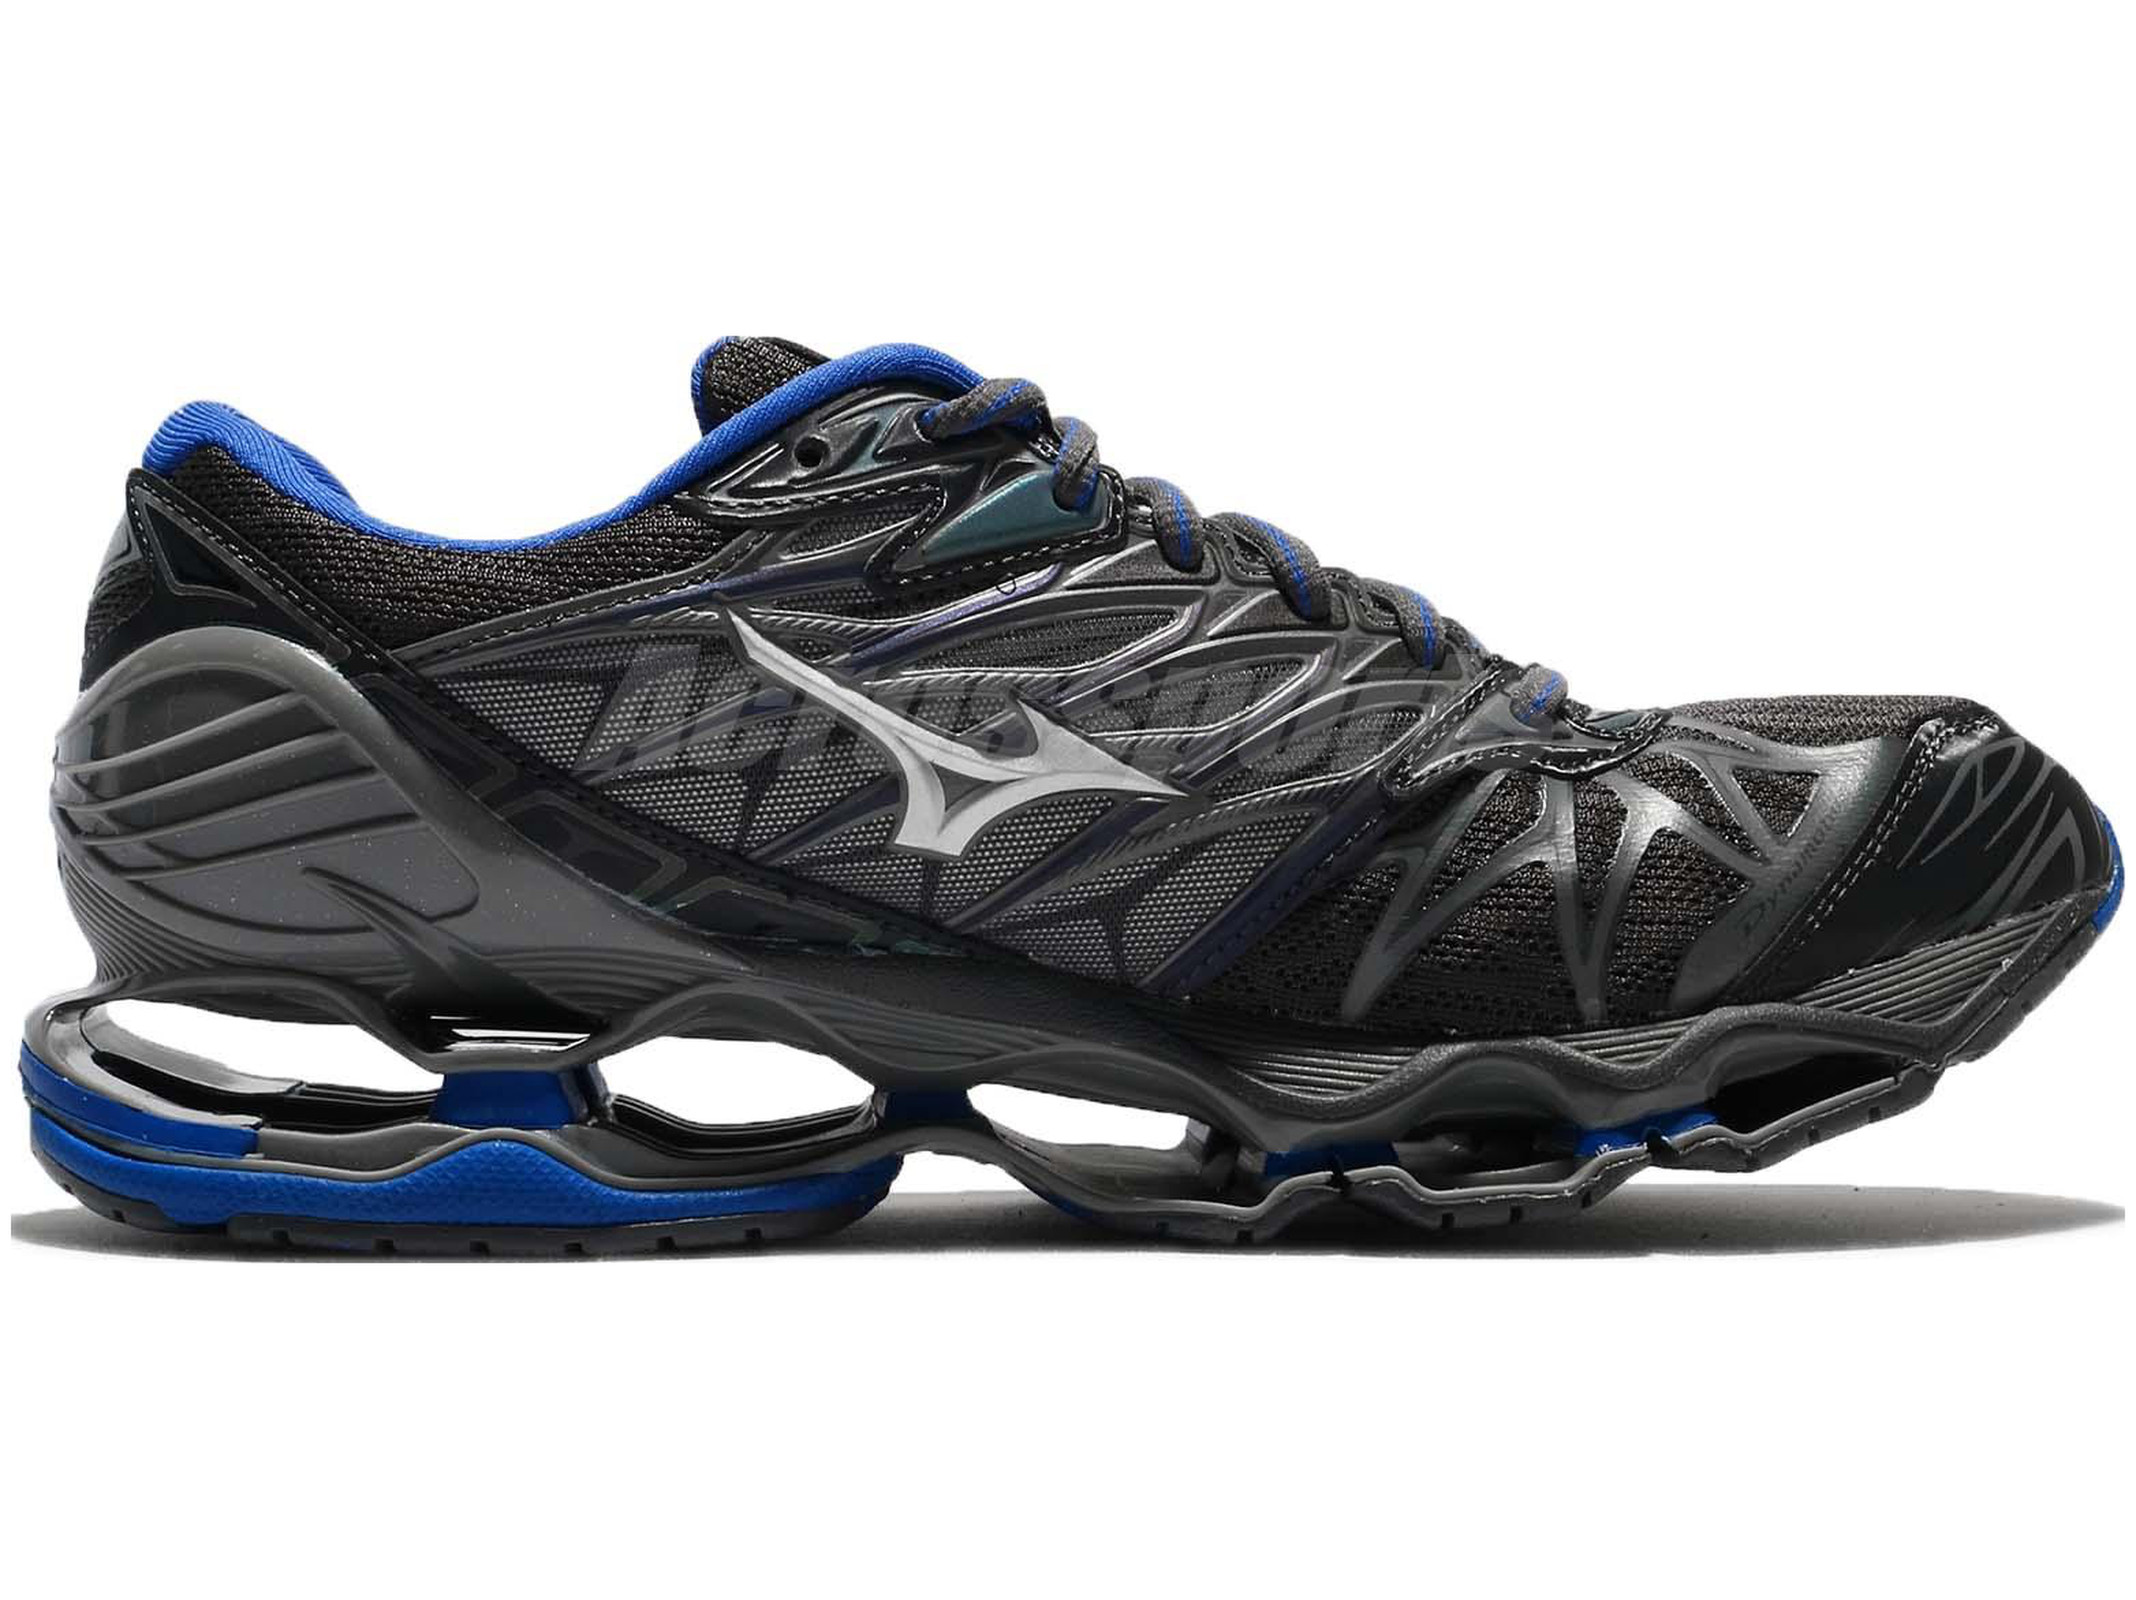 mizuno wave prophecy 2018 wiki price shoes